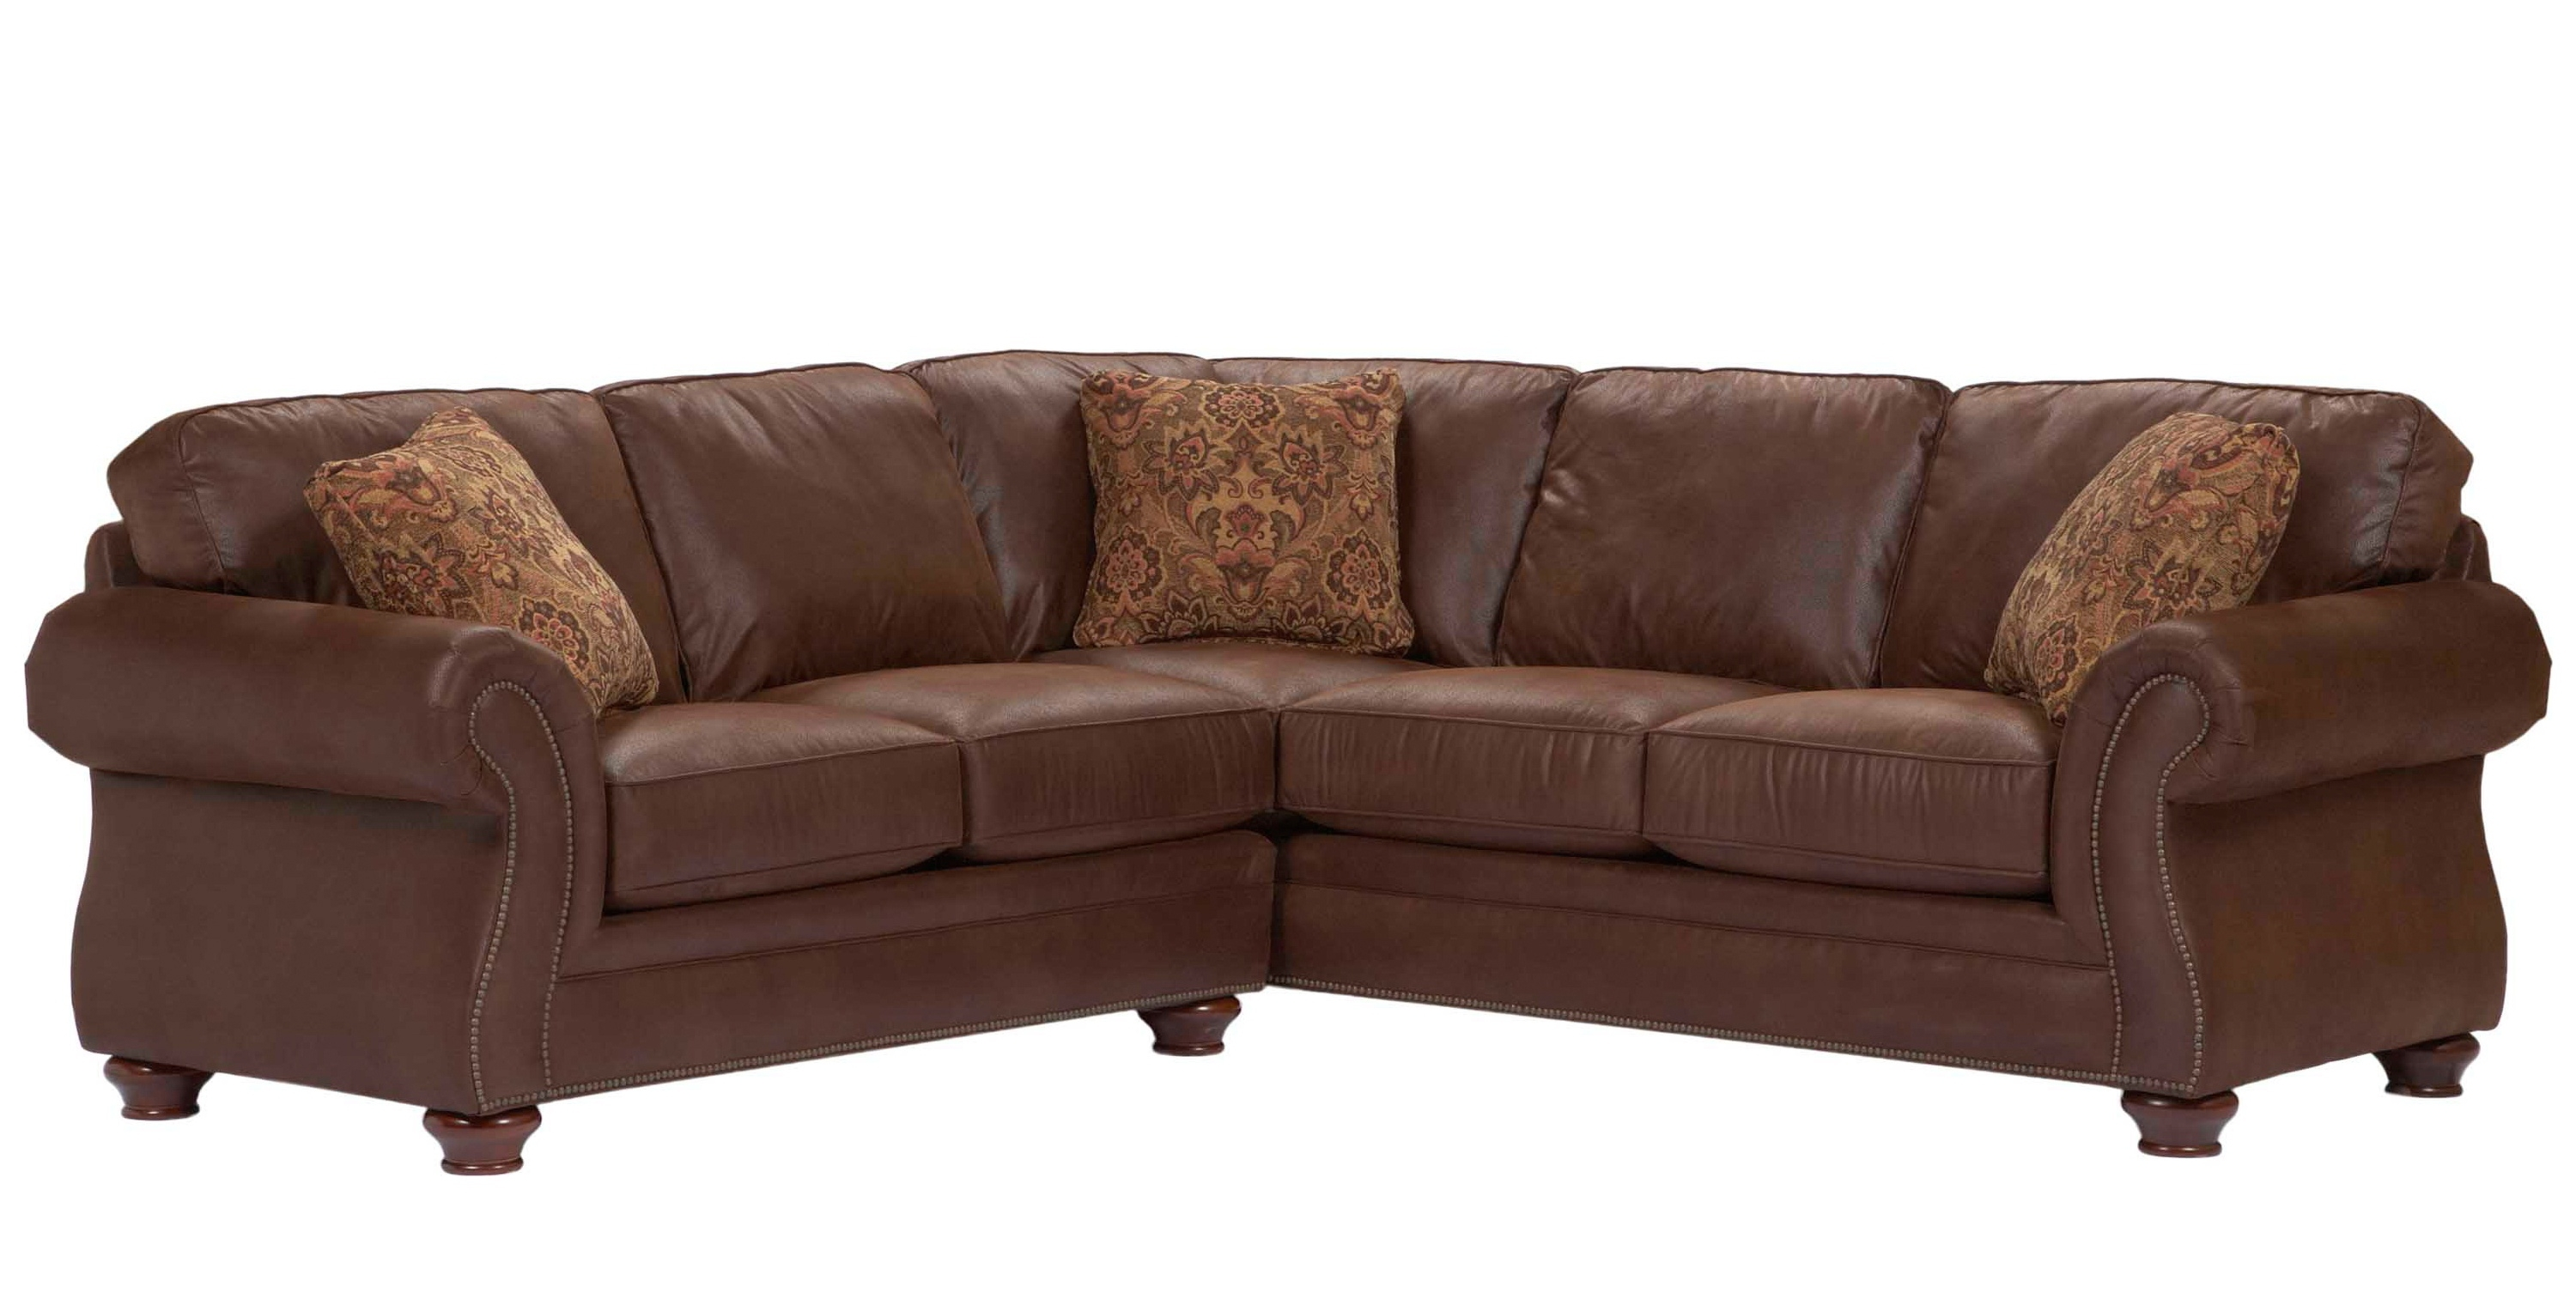 Newest Broyhill Laramie Sectional 5080 1Q/5080 4Q For Sectional Sofas At Broyhill (View 3 of 15)